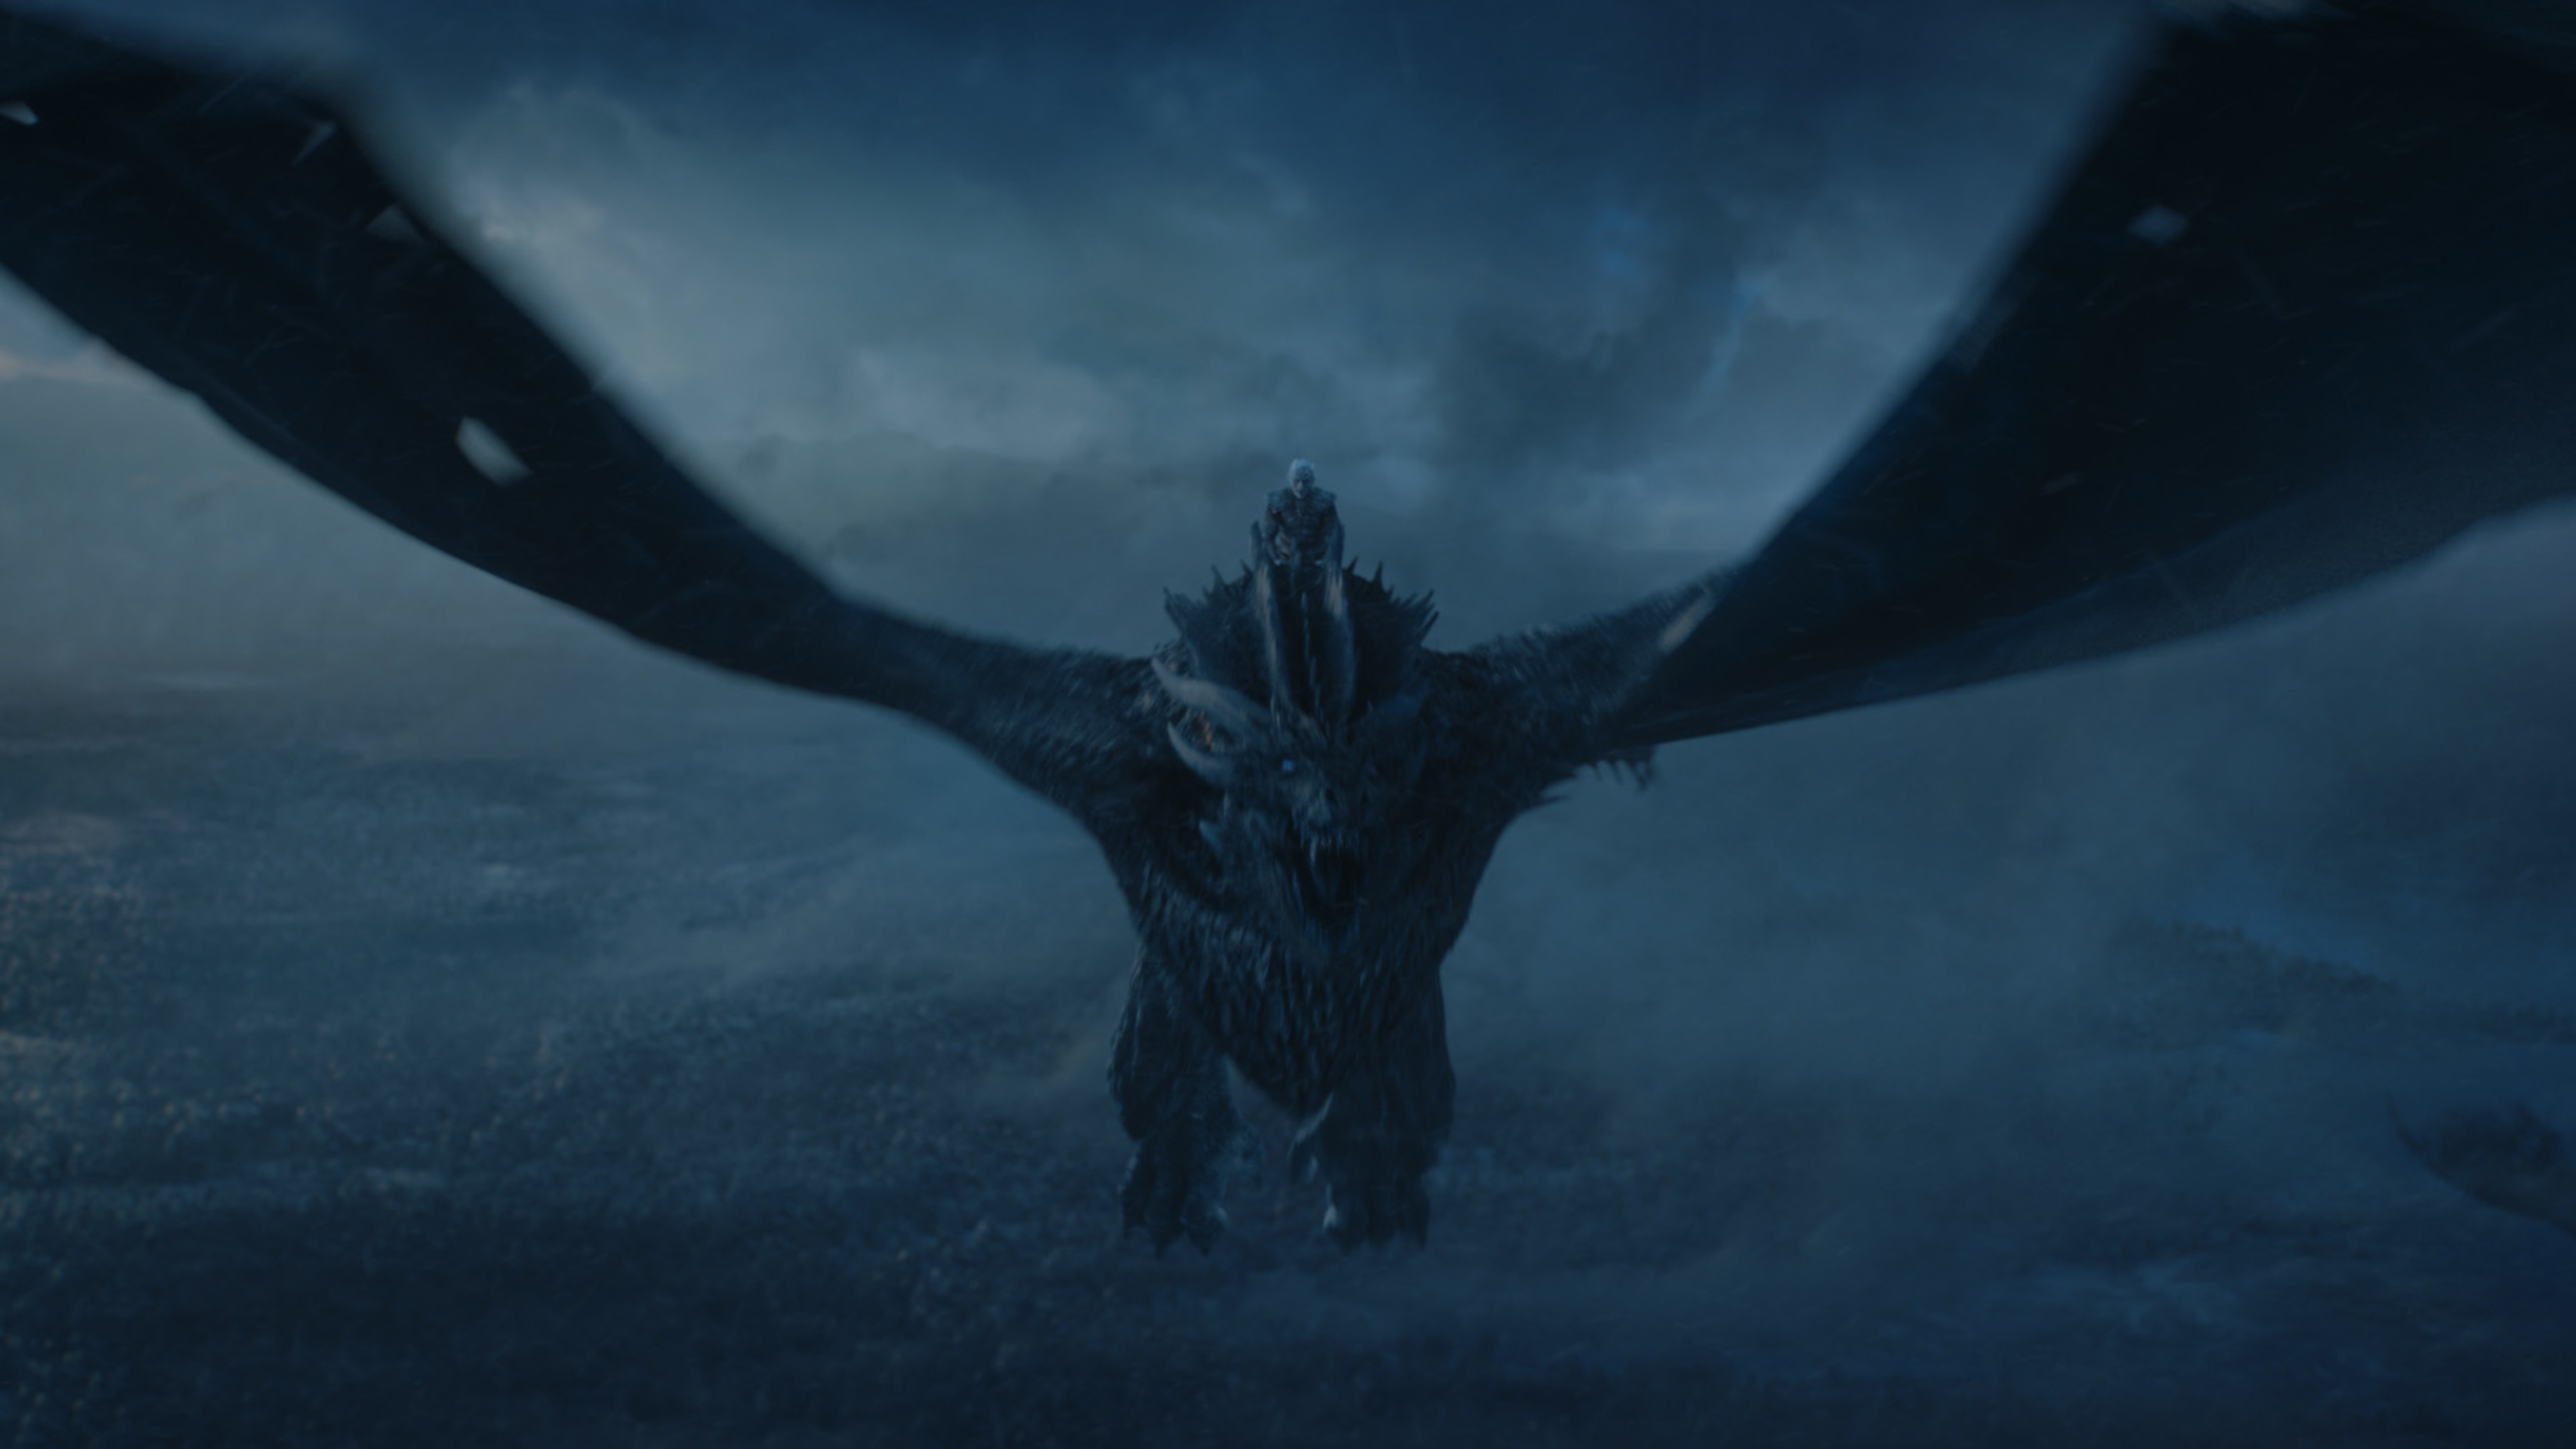 game-of-thrones-season-7-finale-zombie-dragon.jpg